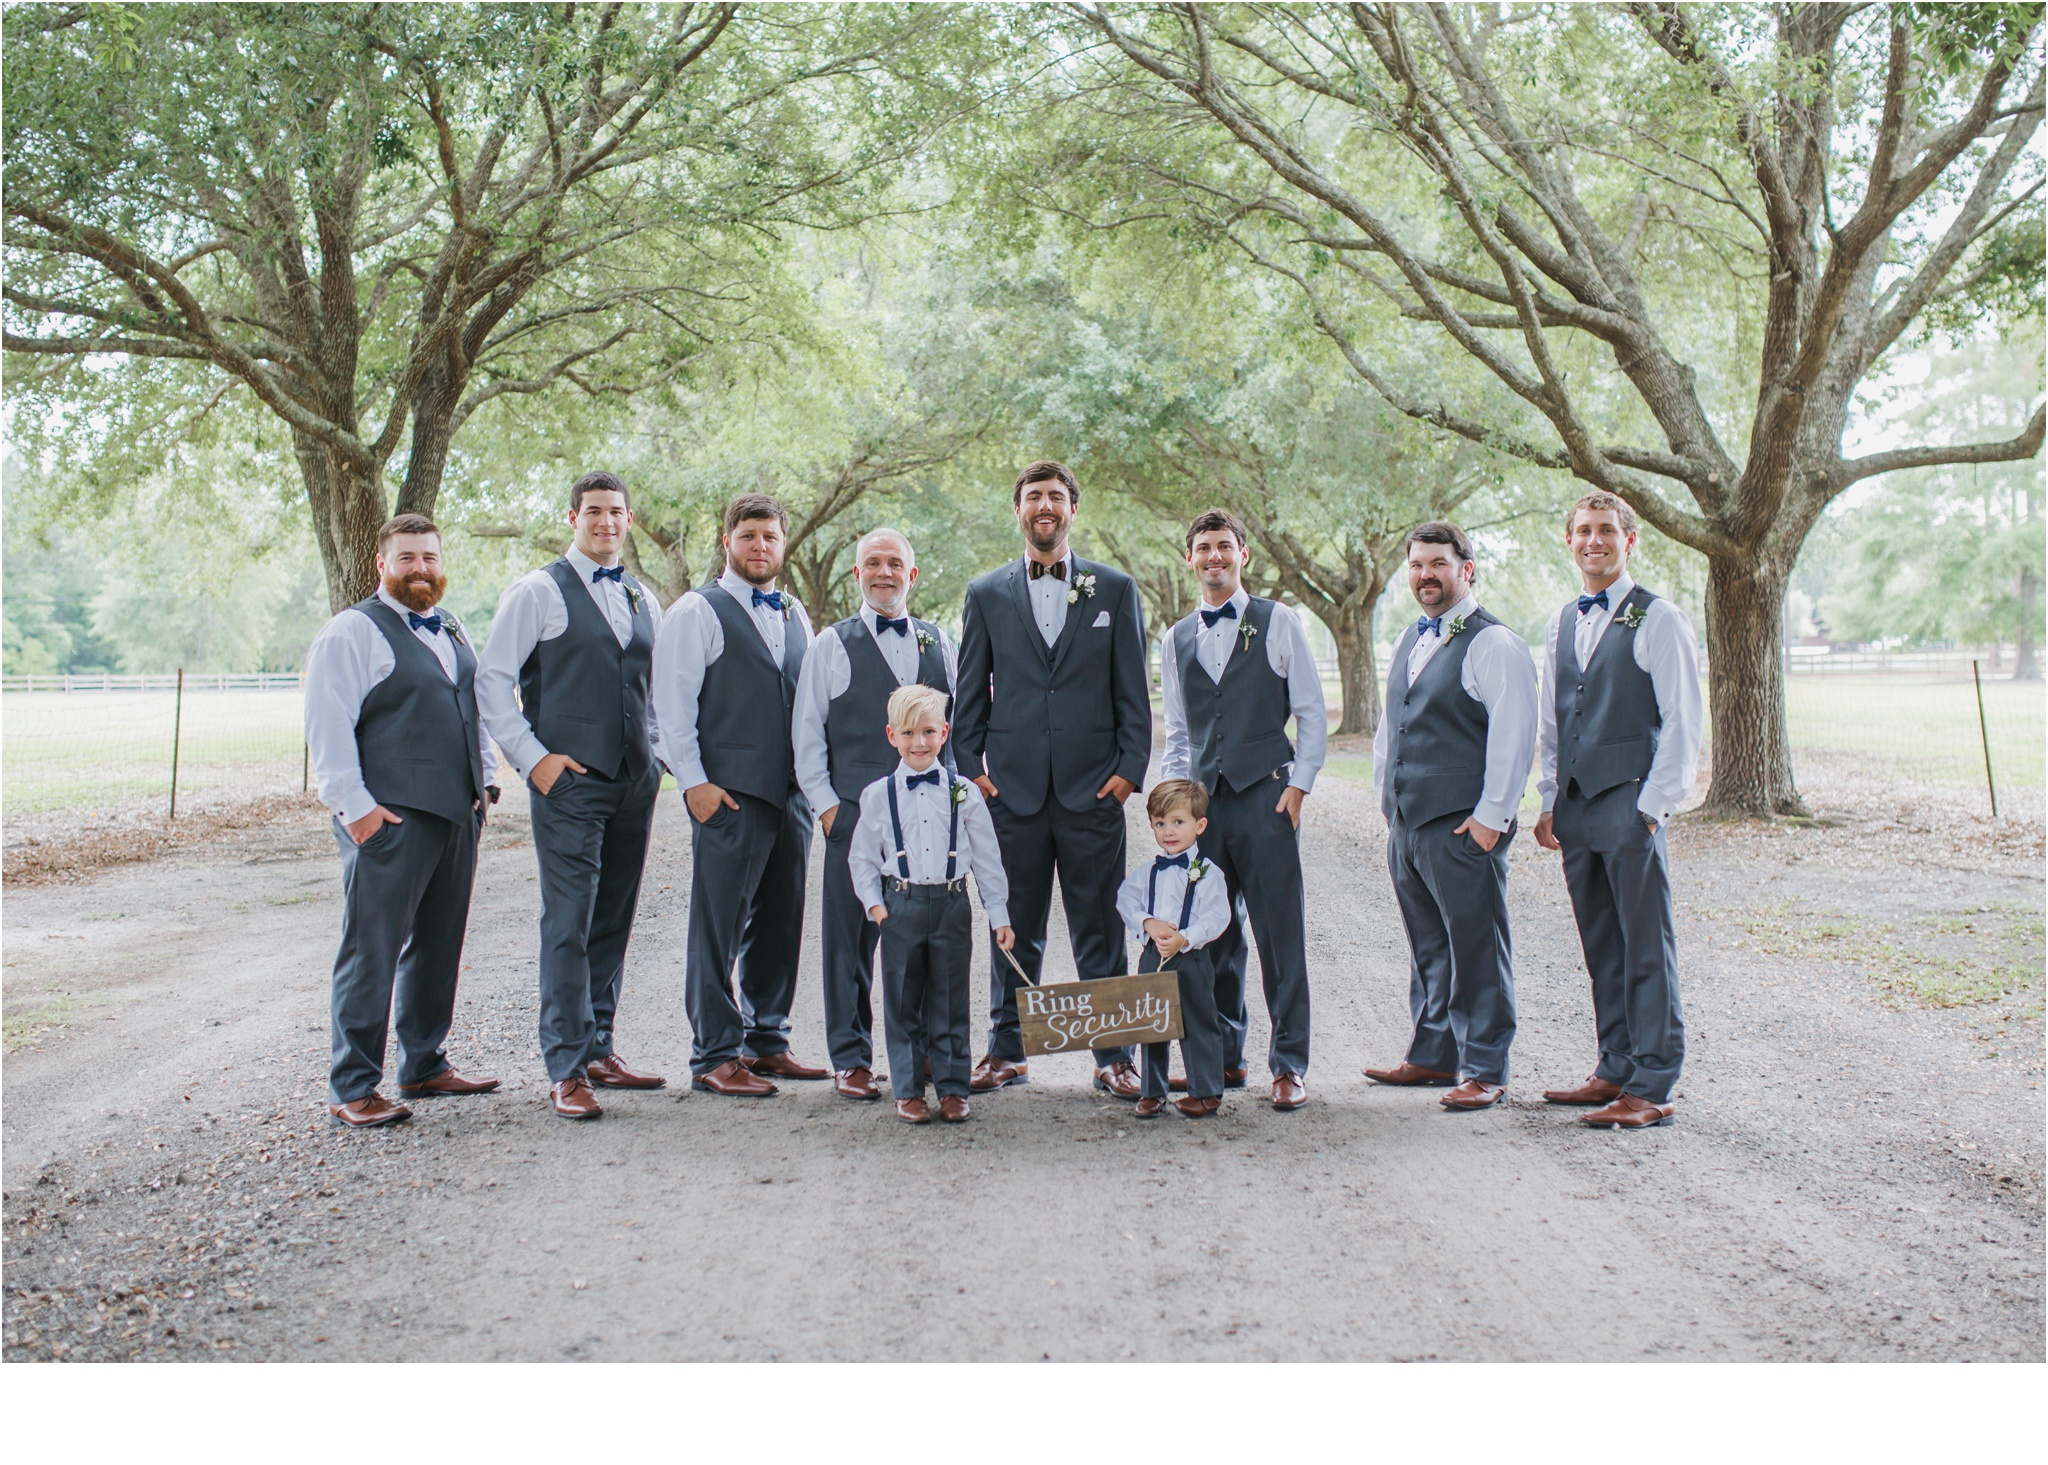 Rainey_Gregg_Photography_St._Simons_Island_Georgia_California_Wedding_Portrait_Photography_0901.jpg